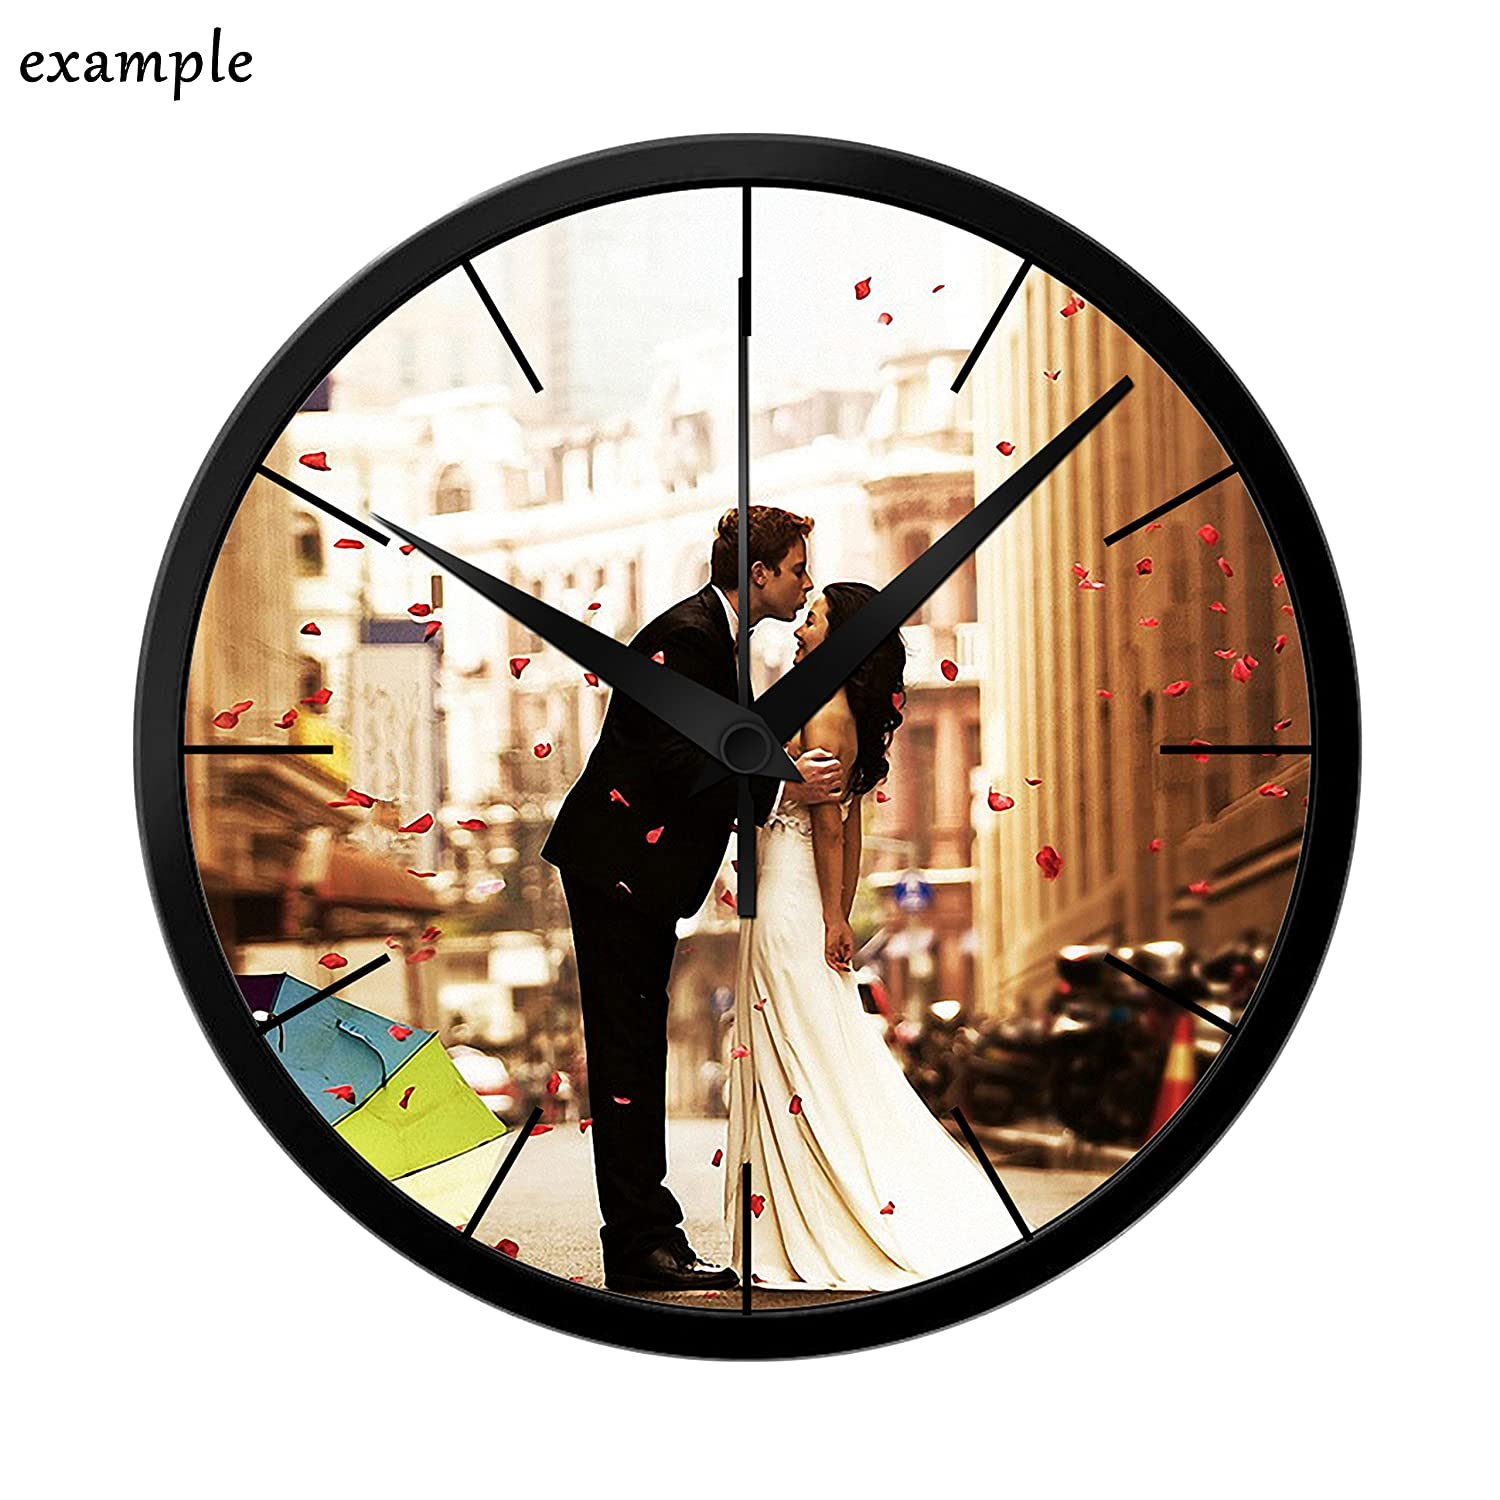 Leecum Customized Products-Add Your Design in the Wall Clock Silent Metal Non-Ticking 10 Inch or 12 Inch or 14 Inch White Black Silver Decorations for Office Kitchen Living Room Bedroom